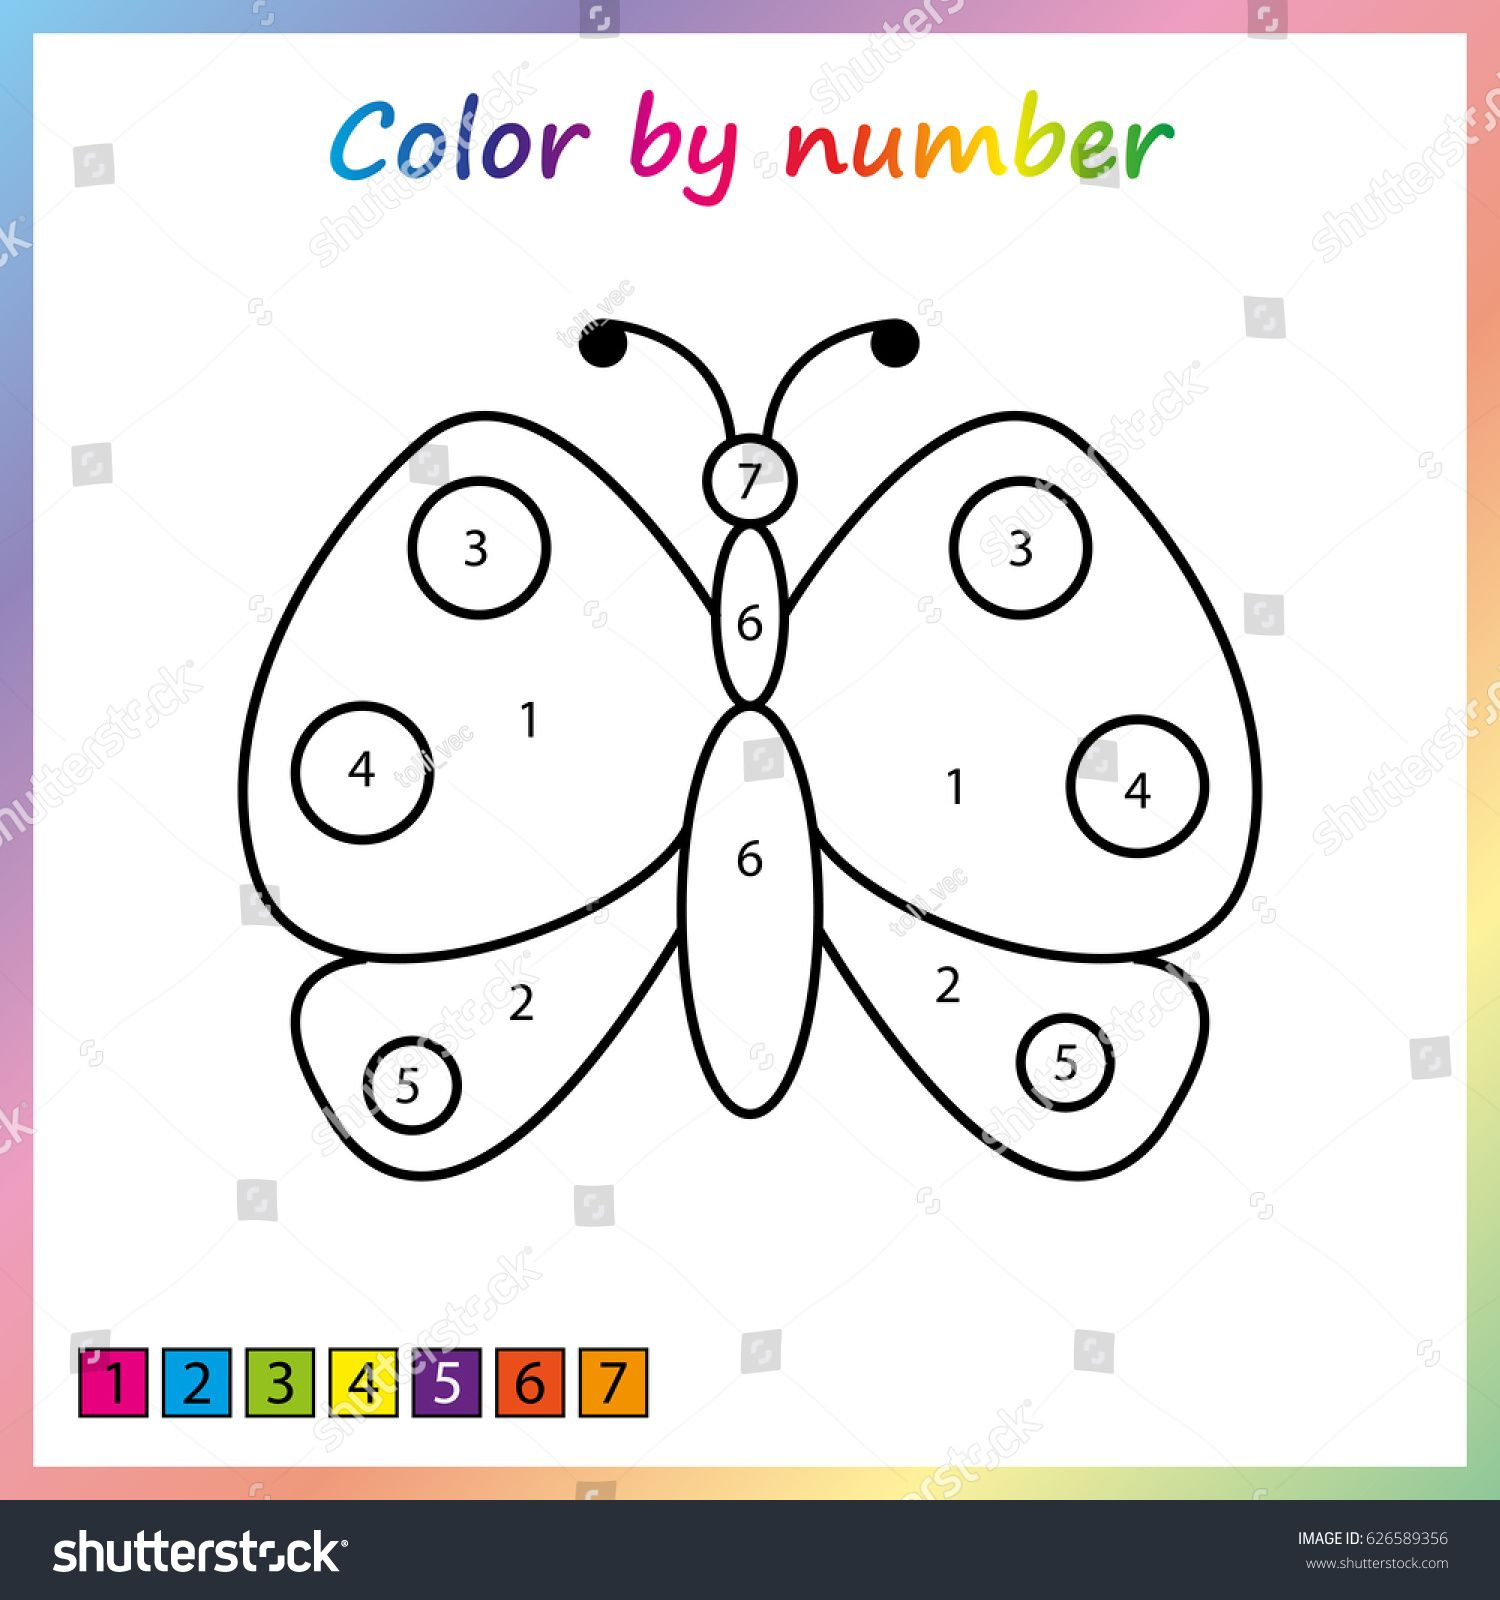 Butterfly Painting Page Color By Numbers Worksheet For Education Game For Preschool Kids Ad Affil Color By Numbers Numbers For Kids Numbers Preschool [ 1600 x 1500 Pixel ]